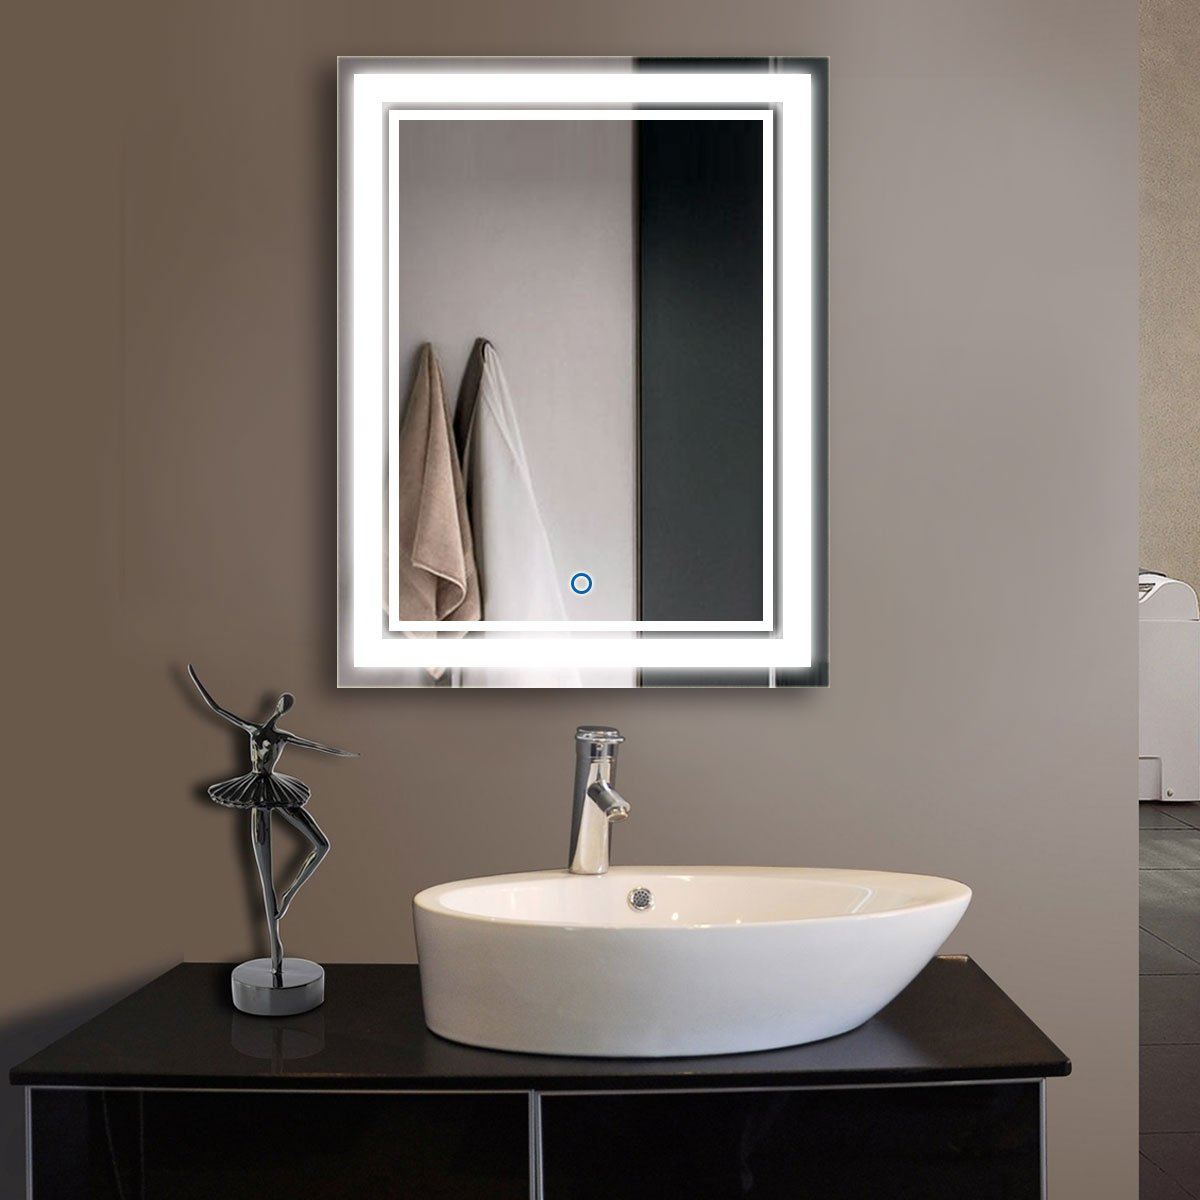 Amazon.com: 28 X 36 In Vertical LED Bathroom Silvered Mirror With Touch  Button (C CK160 I): Home U0026 Kitchen